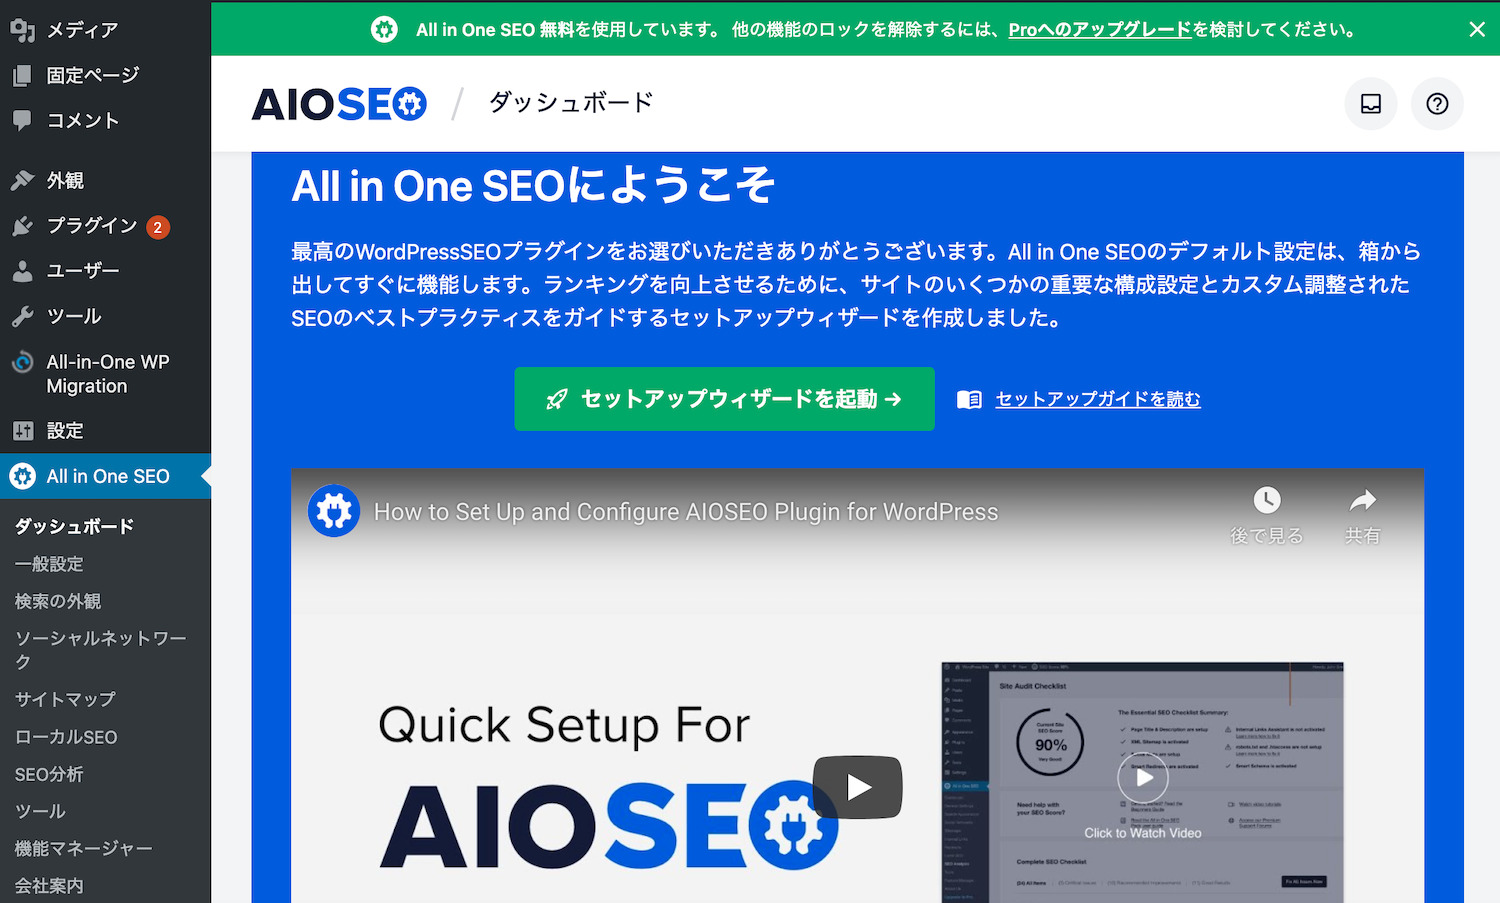 All in one SEOリニューアル後の画面